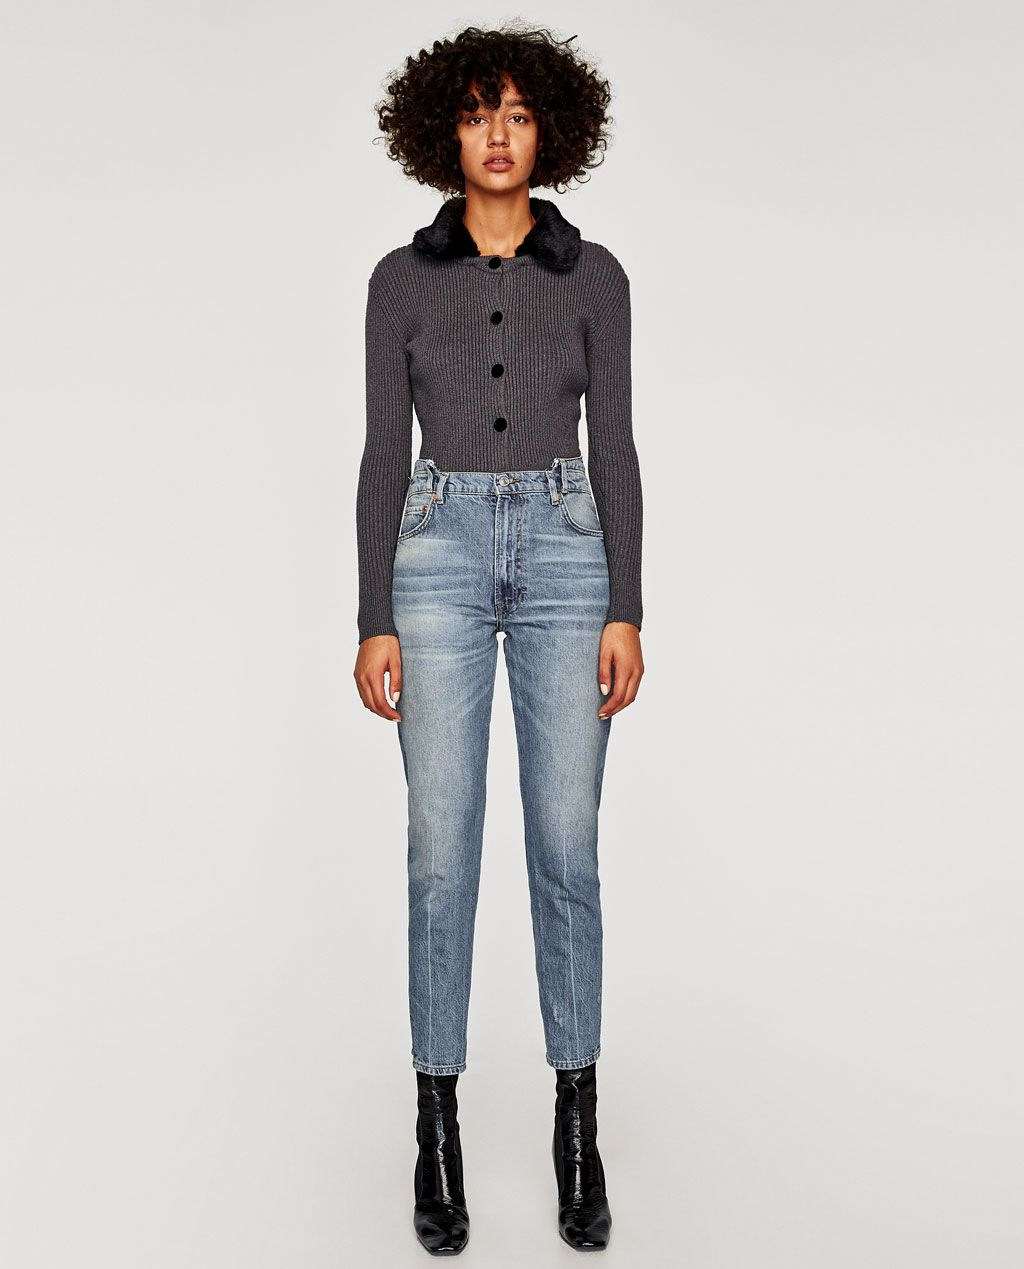 30ff1f38 Image 1 of THE RECONSTRUCTED VINTAGE HIGH WAIST JEANS from Zara ...